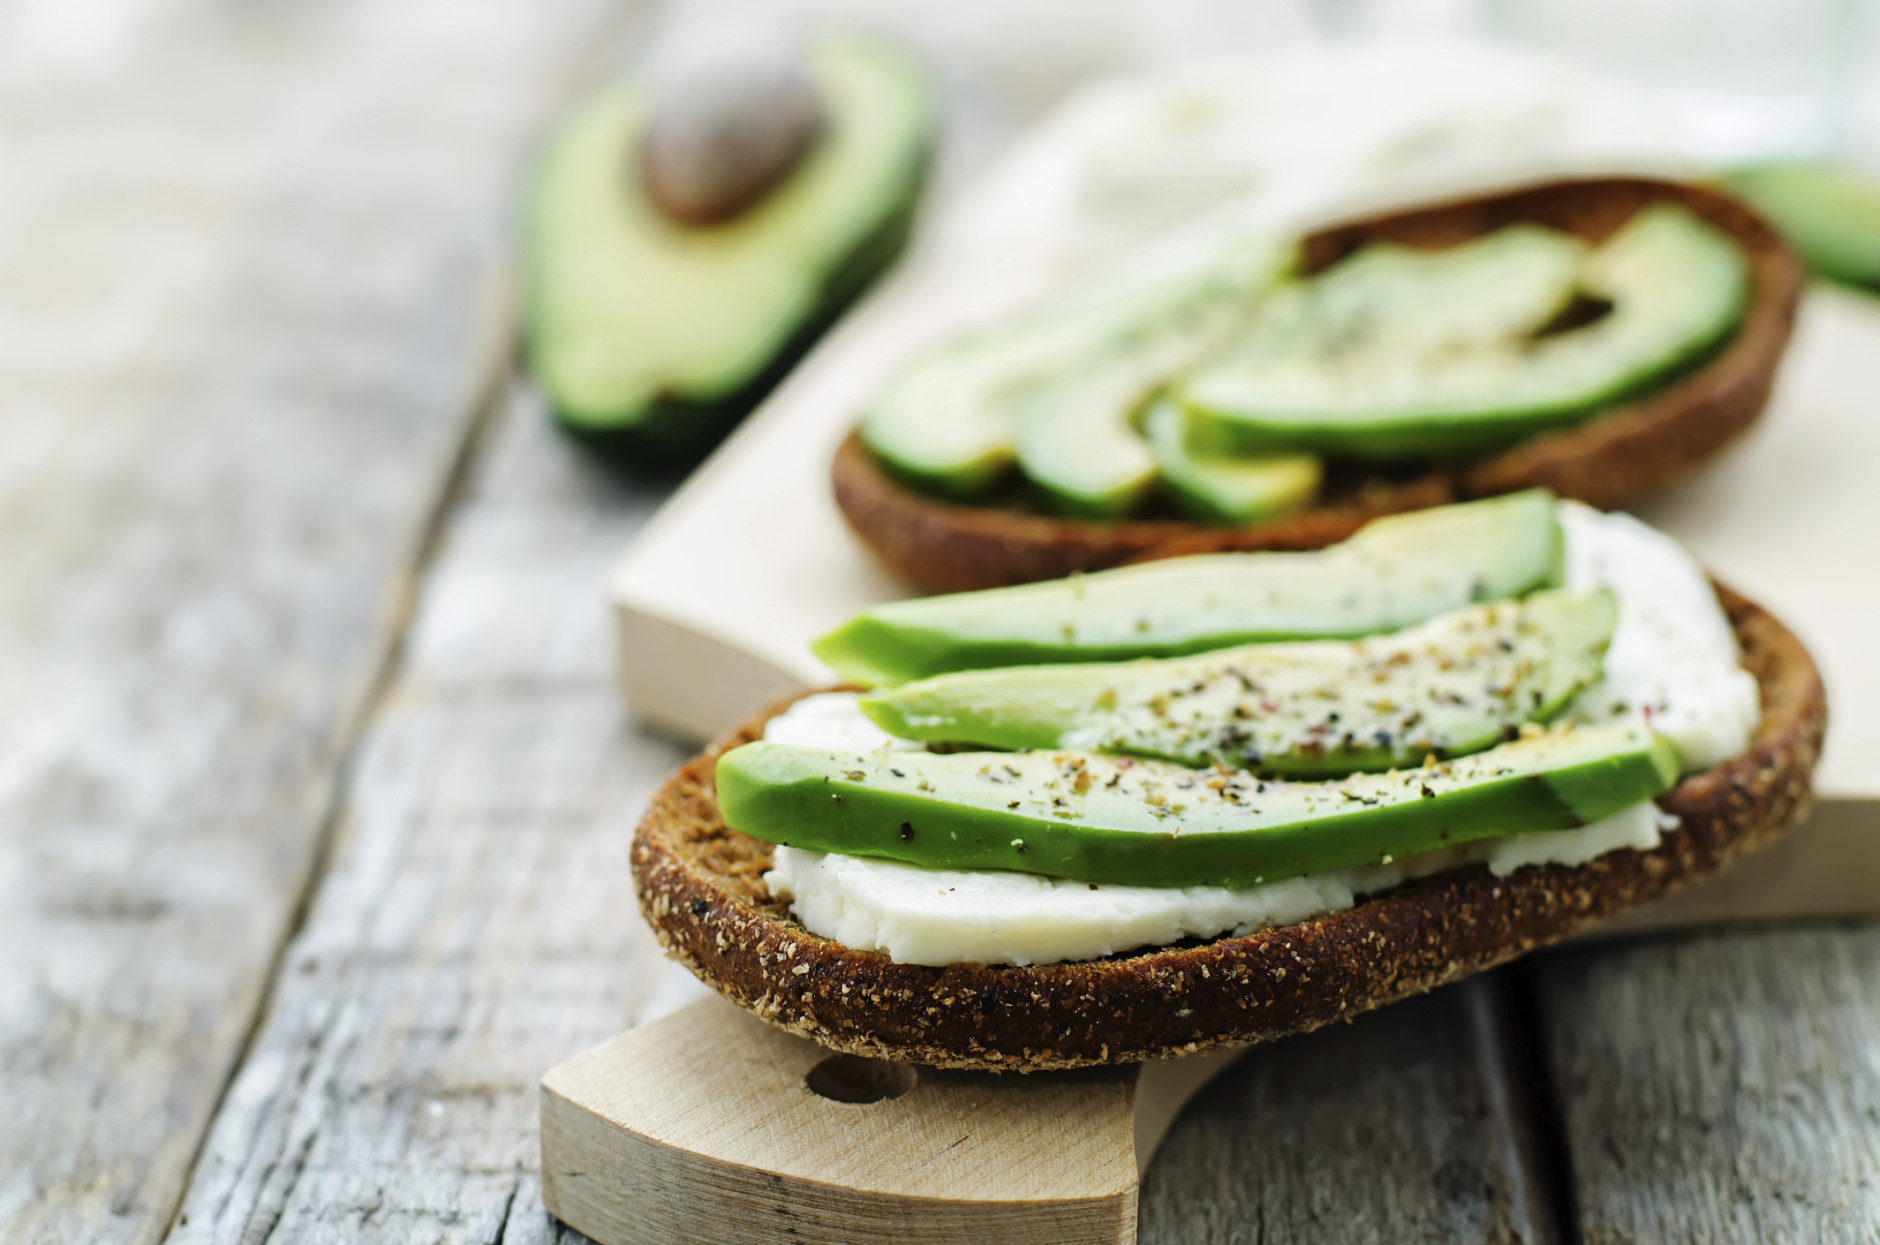 sandwich of rye bread with avocado and goat cheese